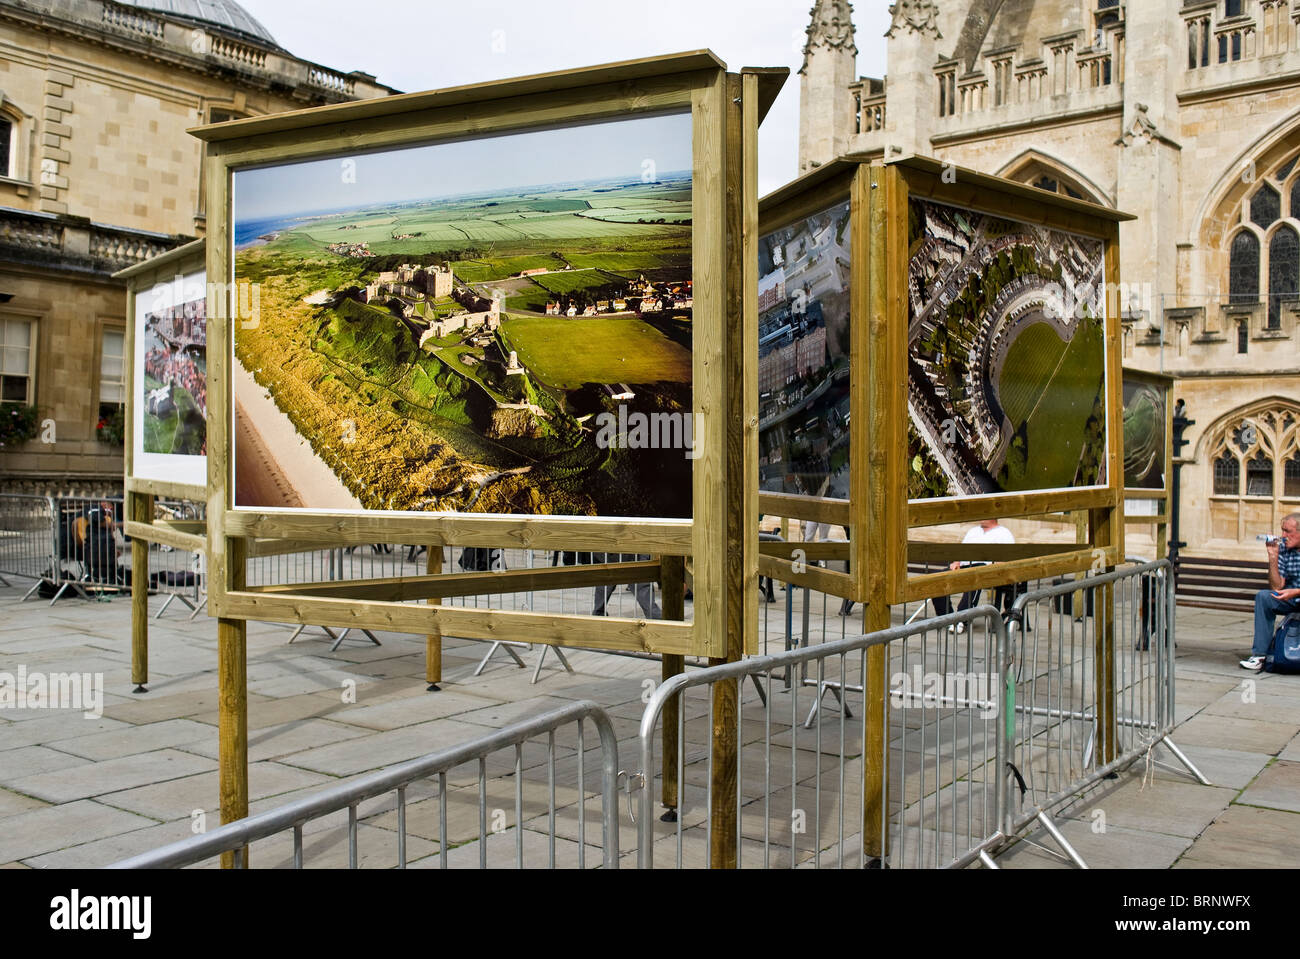 Outdoor exhibition of aerial photography of Great Britain in Bath UK - Stock Image